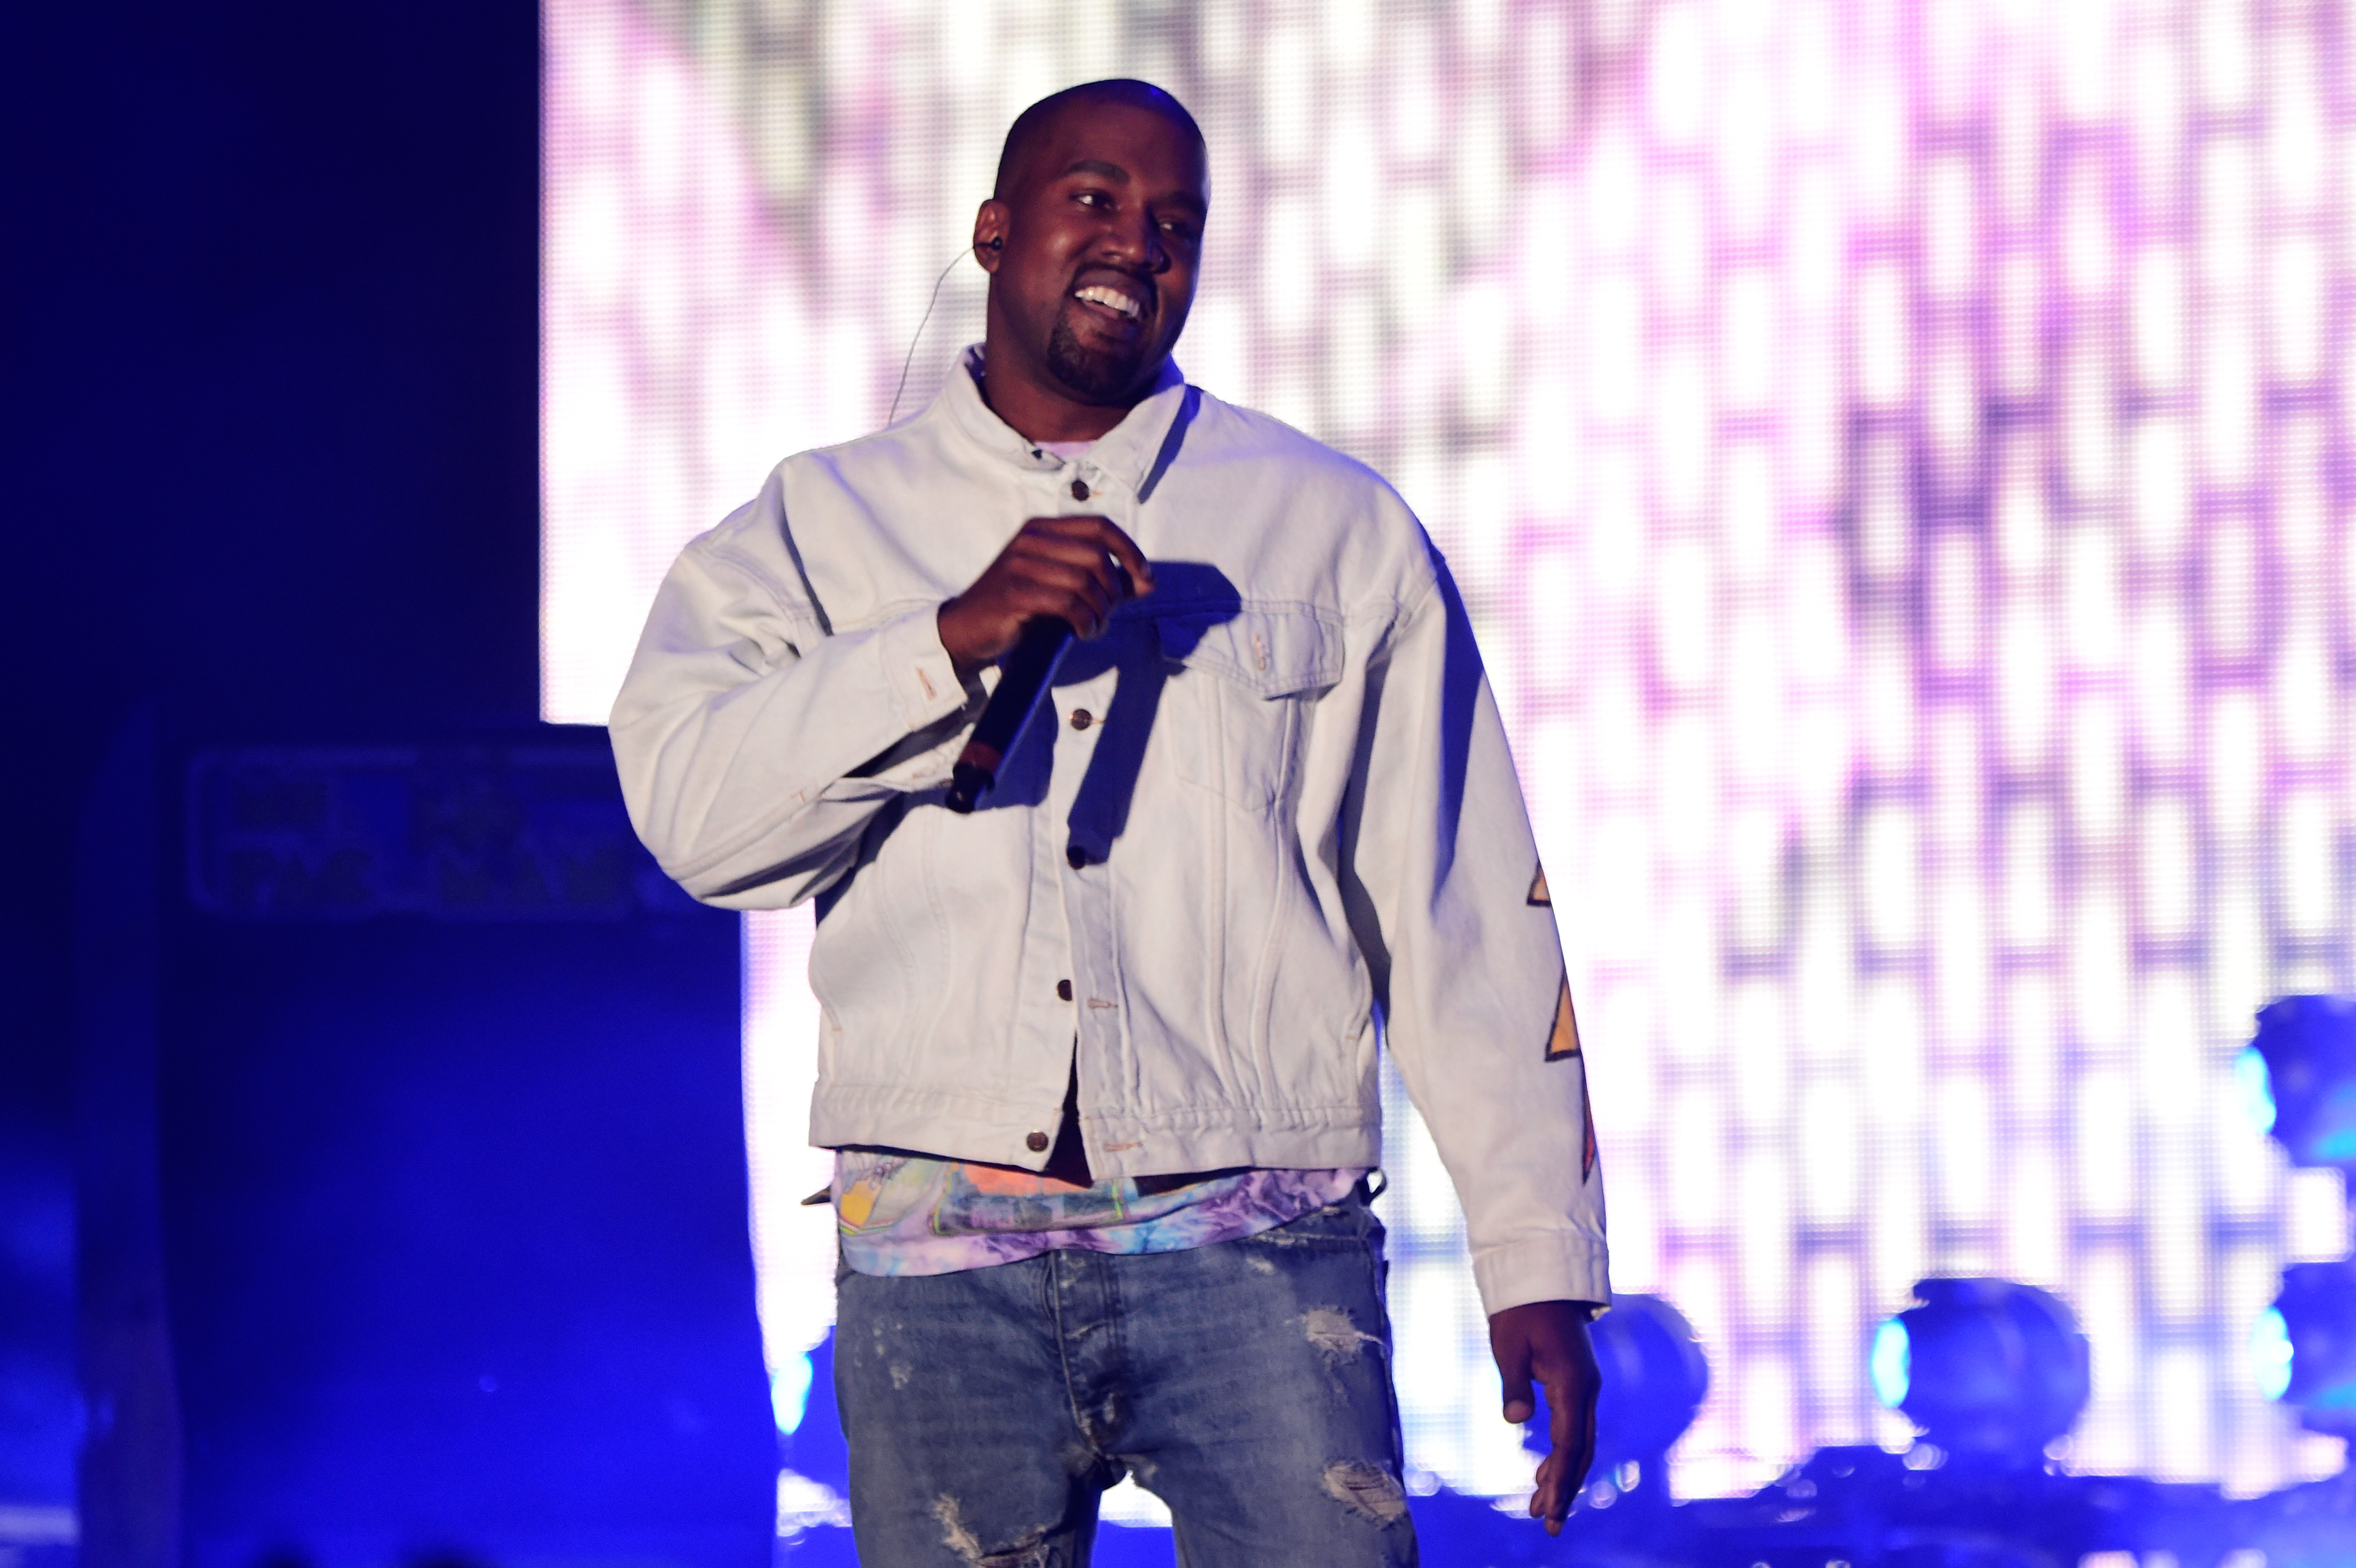 The Kanye West Taylor Swift Feud Has Just Got A Whole Lot Worse GettyImages 521487658